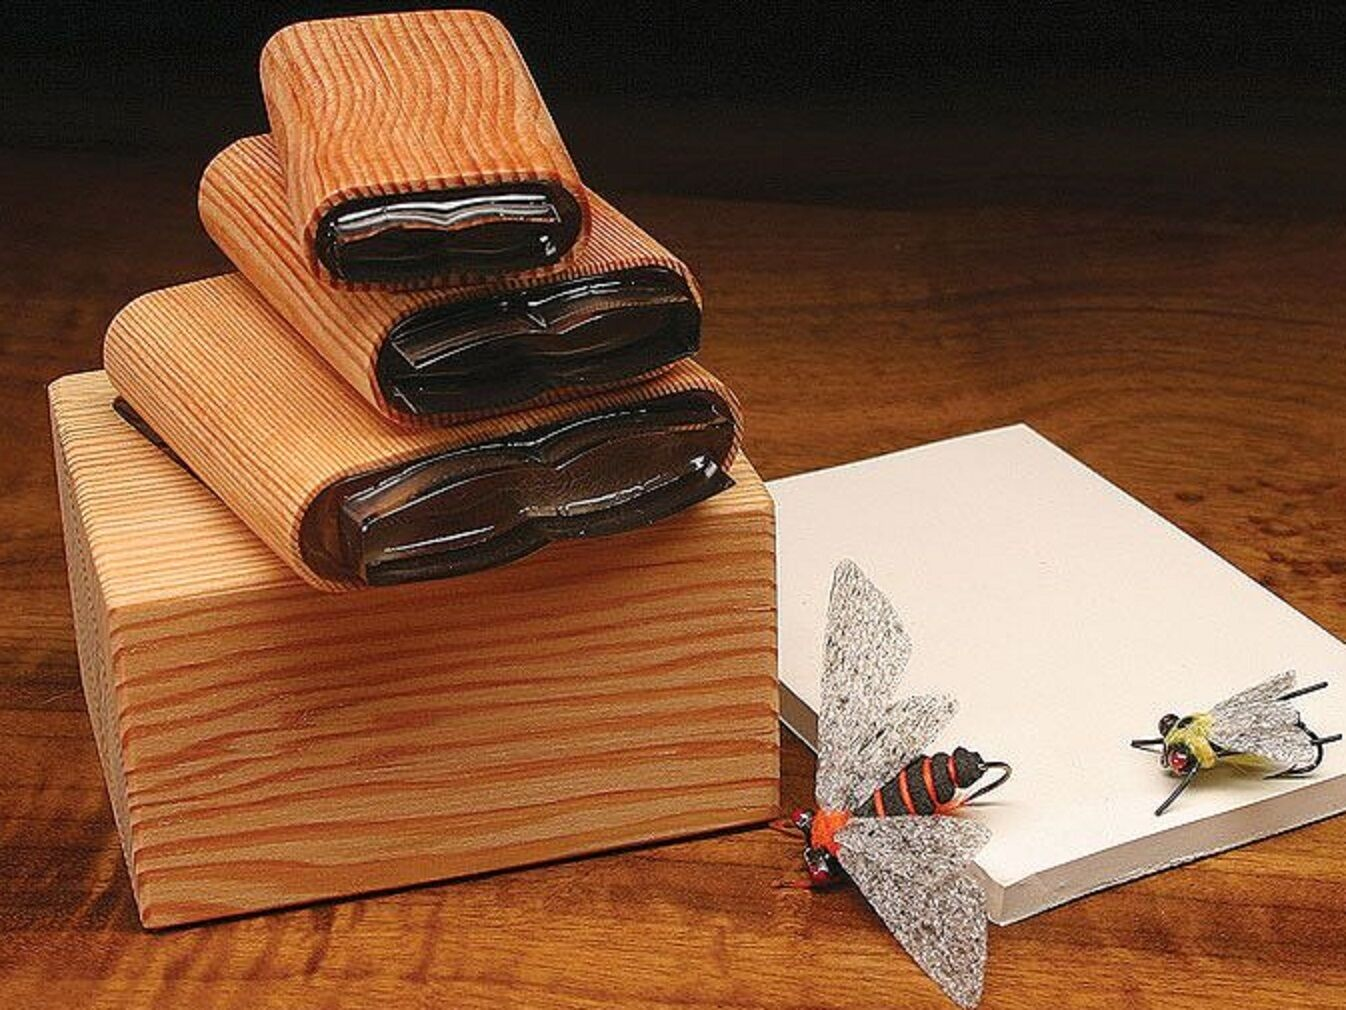 DELUXE UNIVERSAL BUG BODY  3 CUTTER SET   with Wood Caddy Box -- Fly Tying